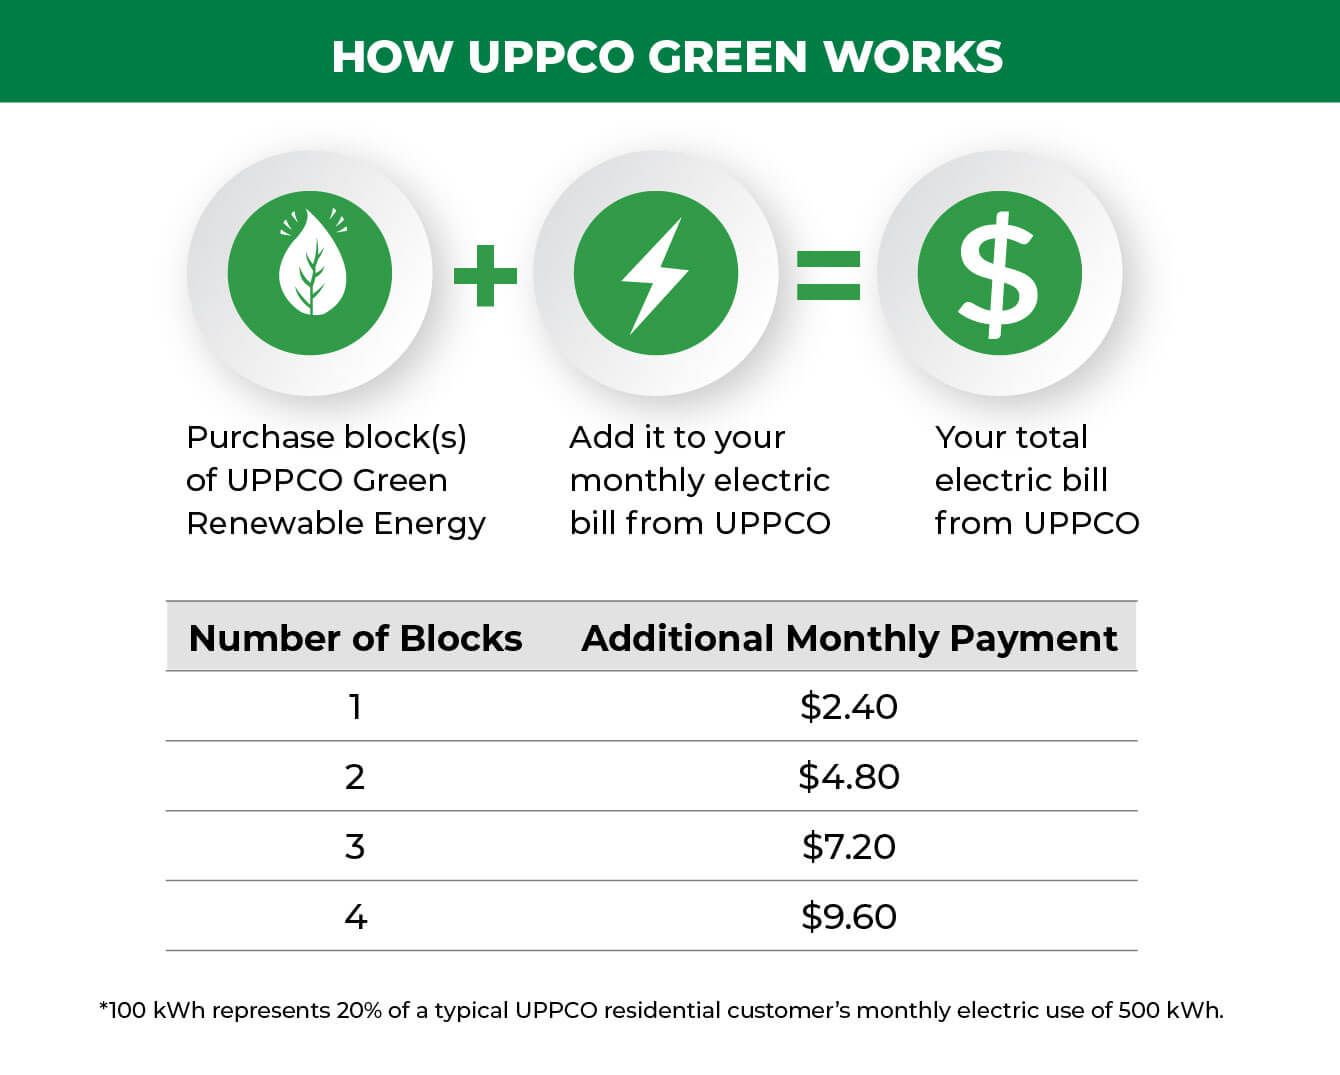 how-uppco-green-works-infographic